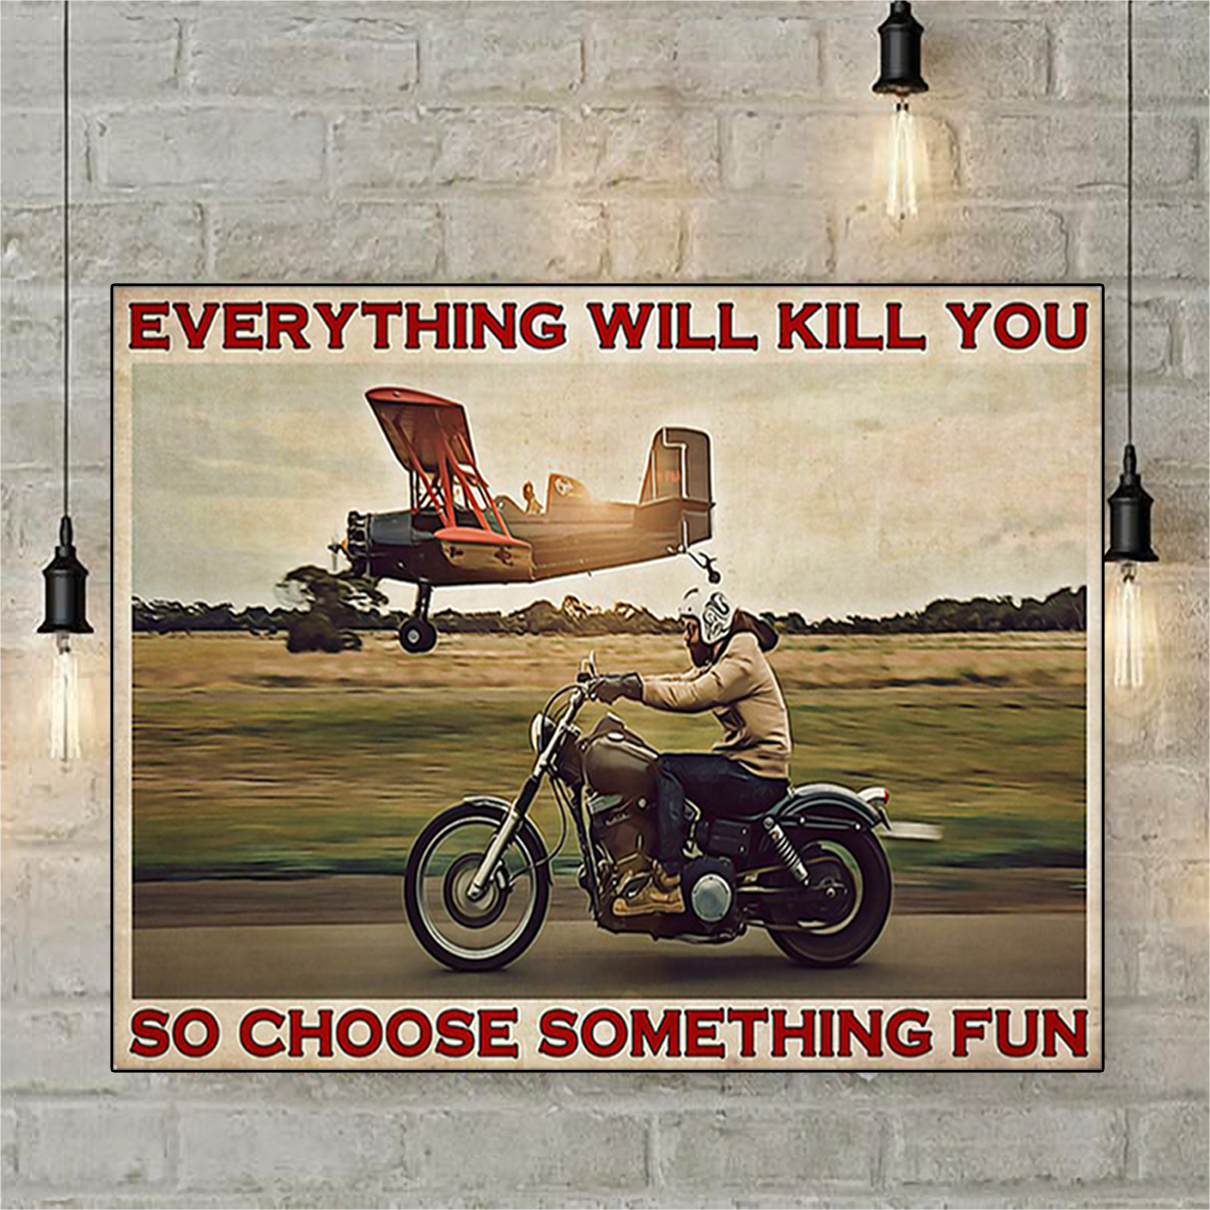 Motorbike planes everything will kill you so choose something fun poster A2